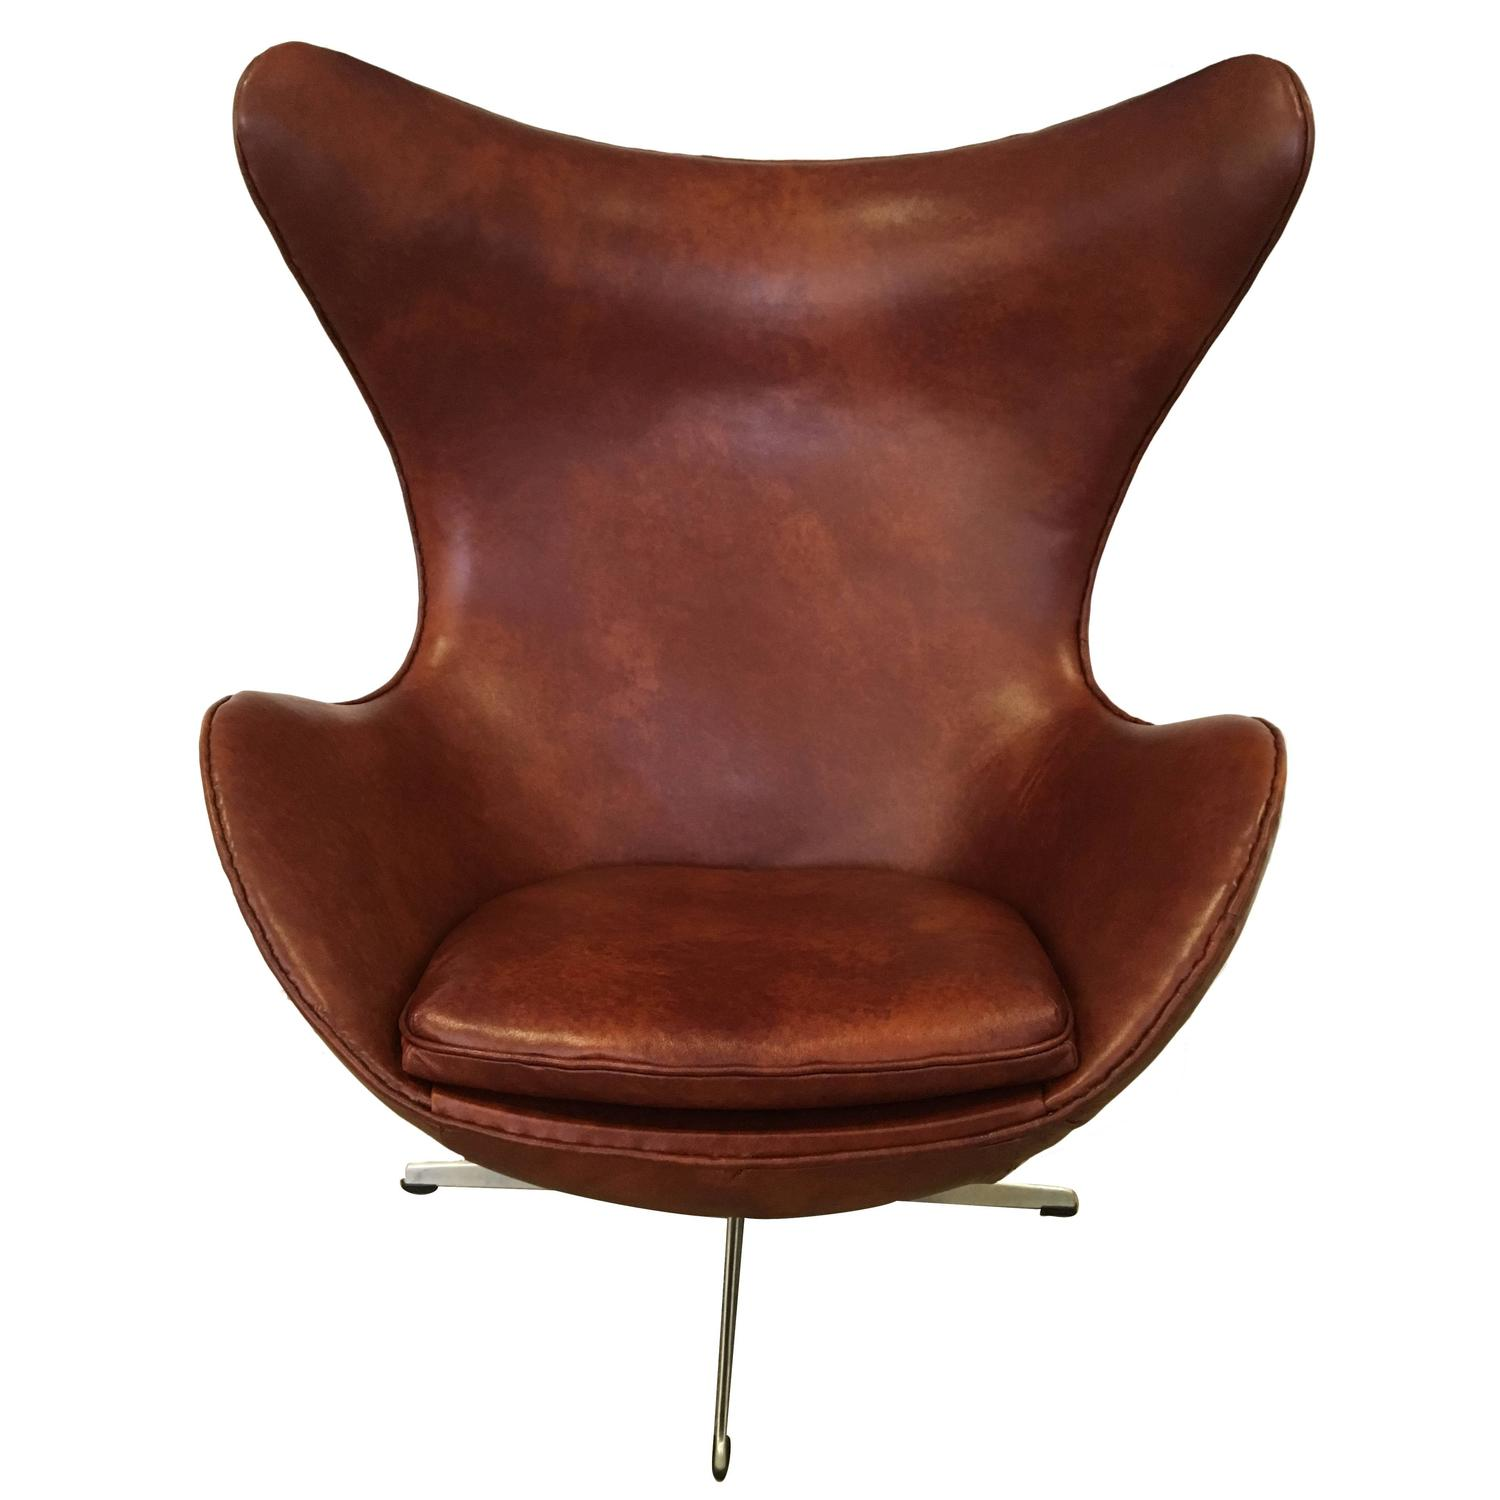 Arne jacobsen egg chair produced by fritz hansen 1965 for for Egg chair jacobsen